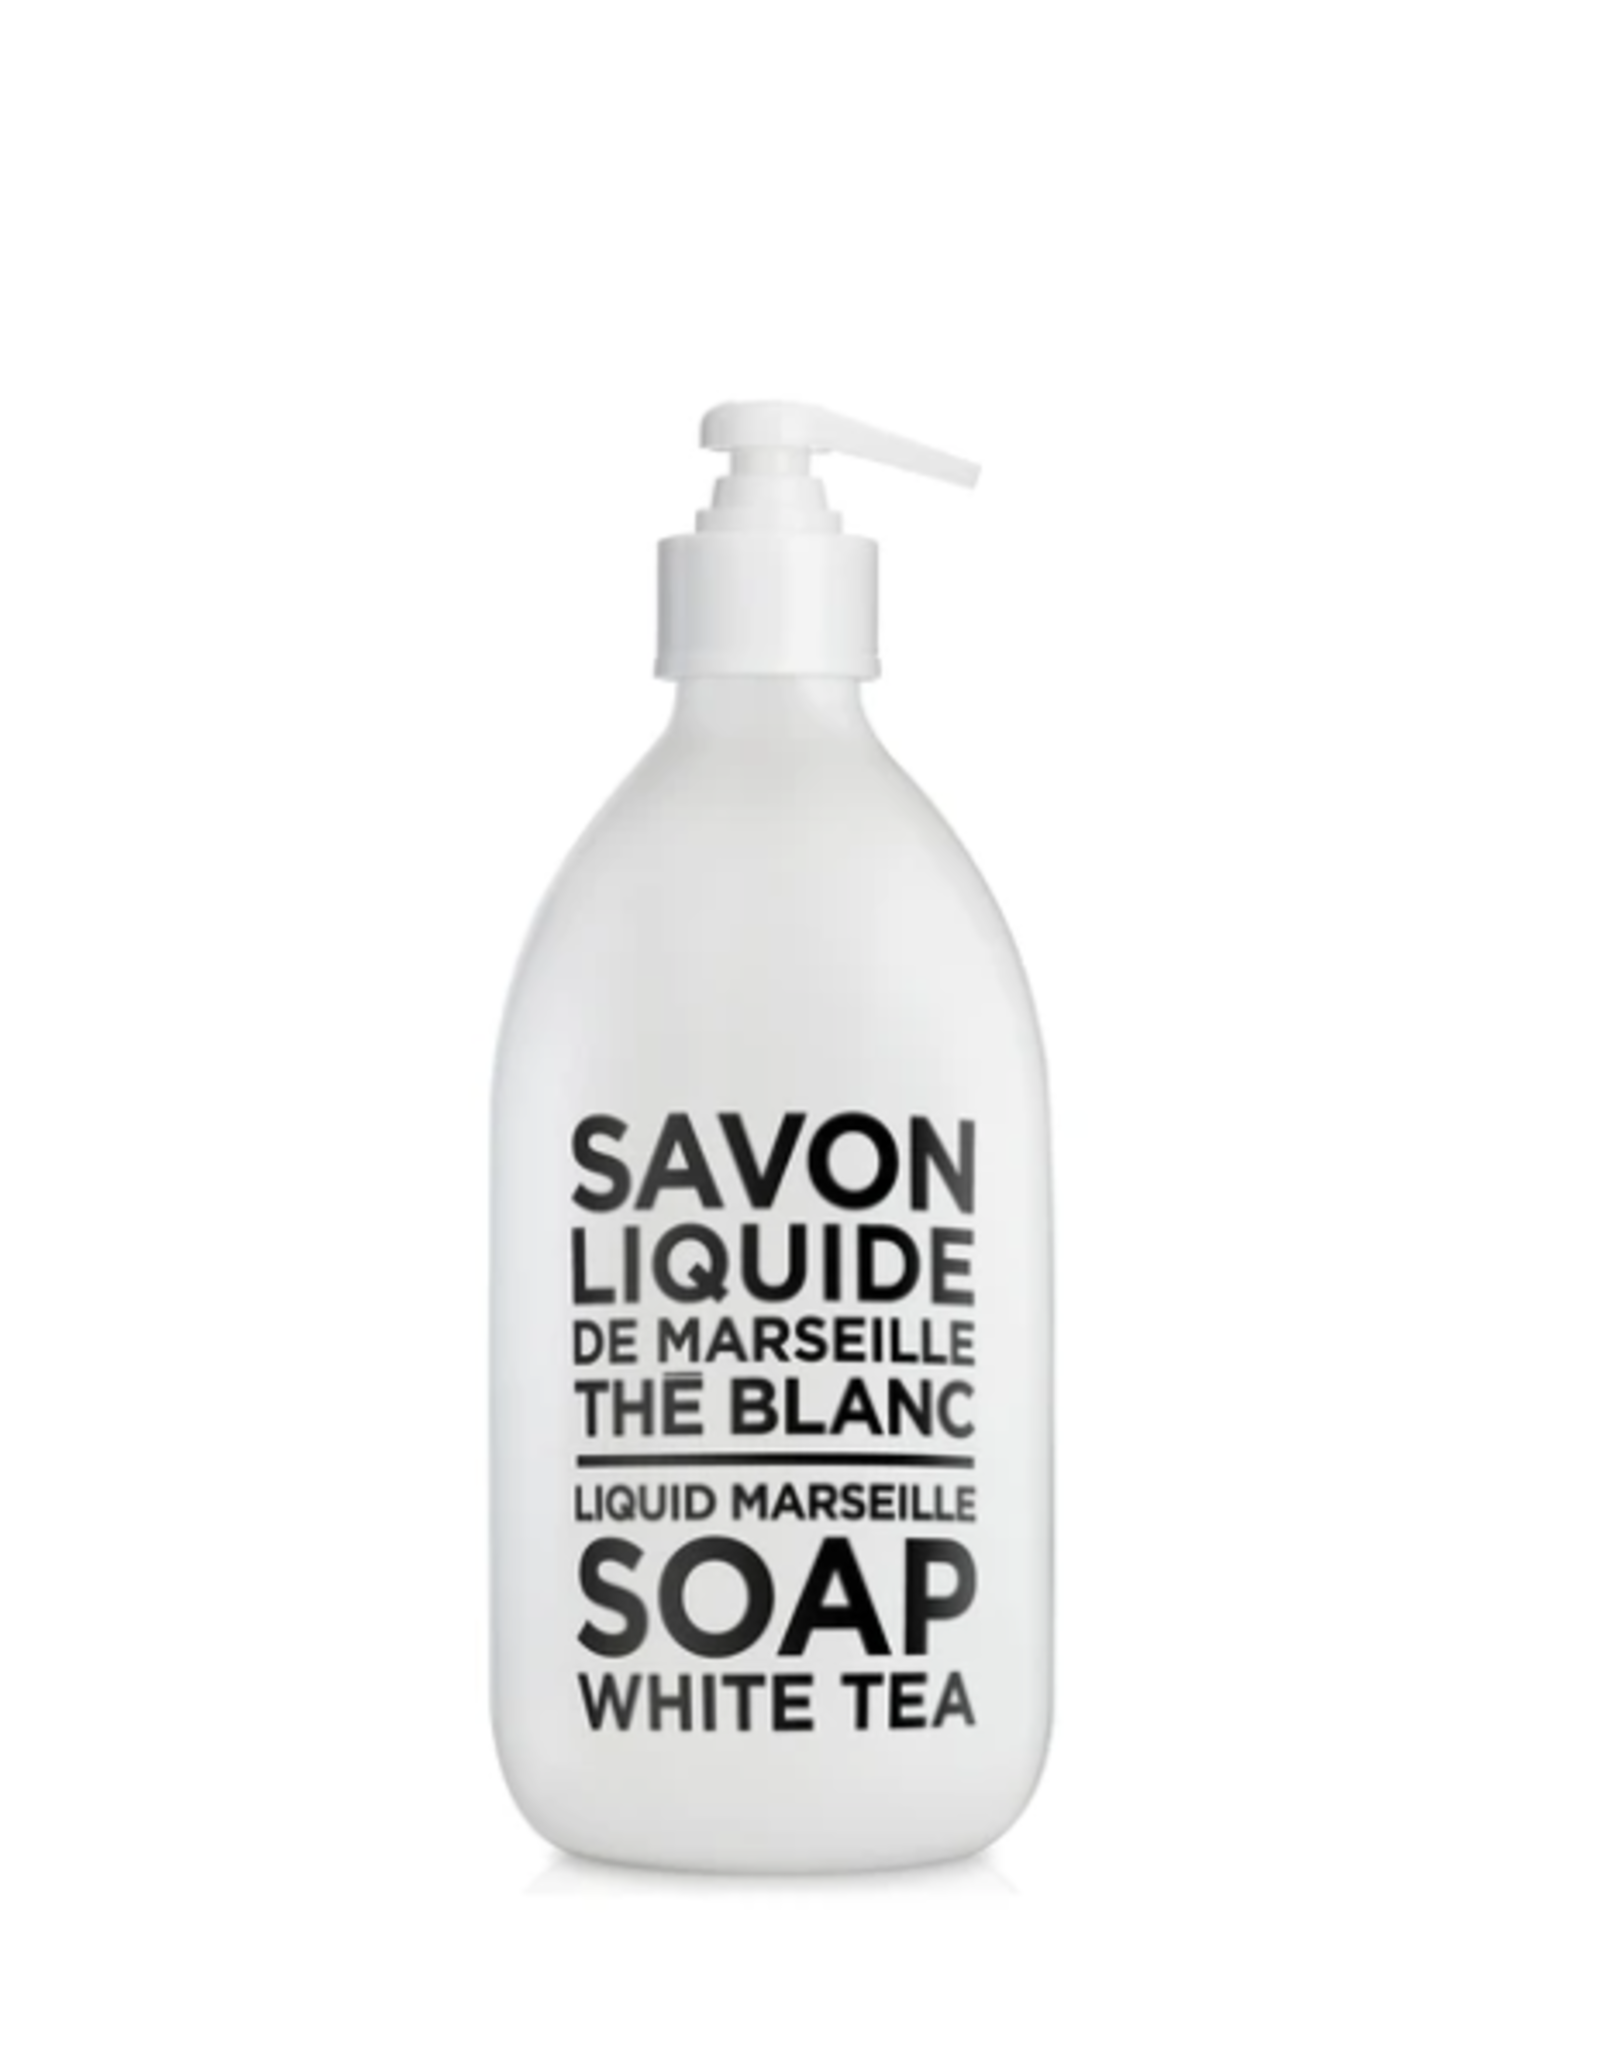 Liquid Marseille Soap White Tea 16.9 fl oz